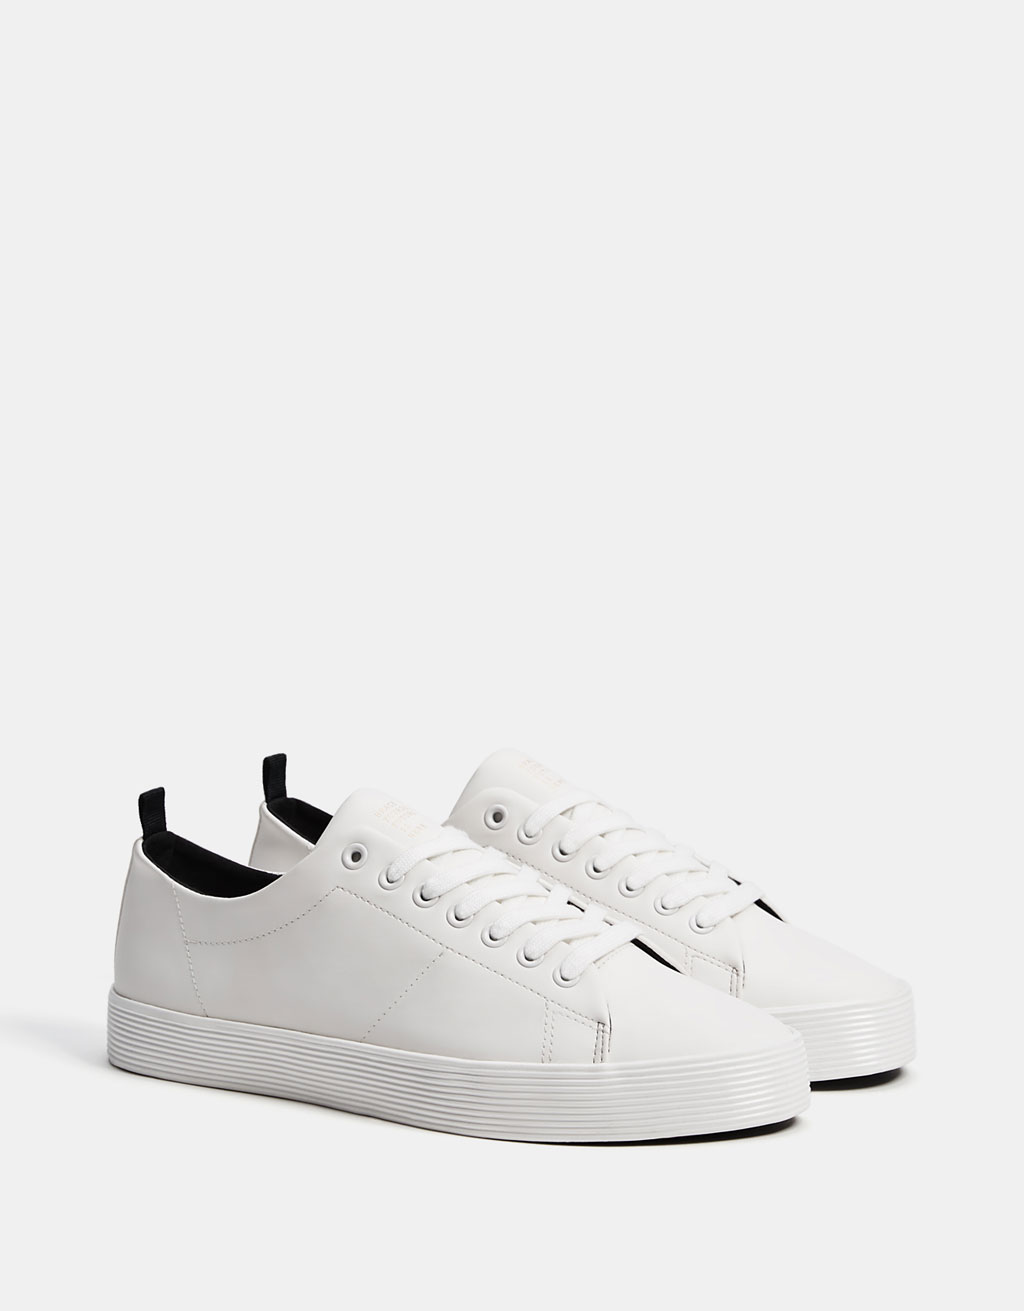 Men's monochrome sneakers with textured soles